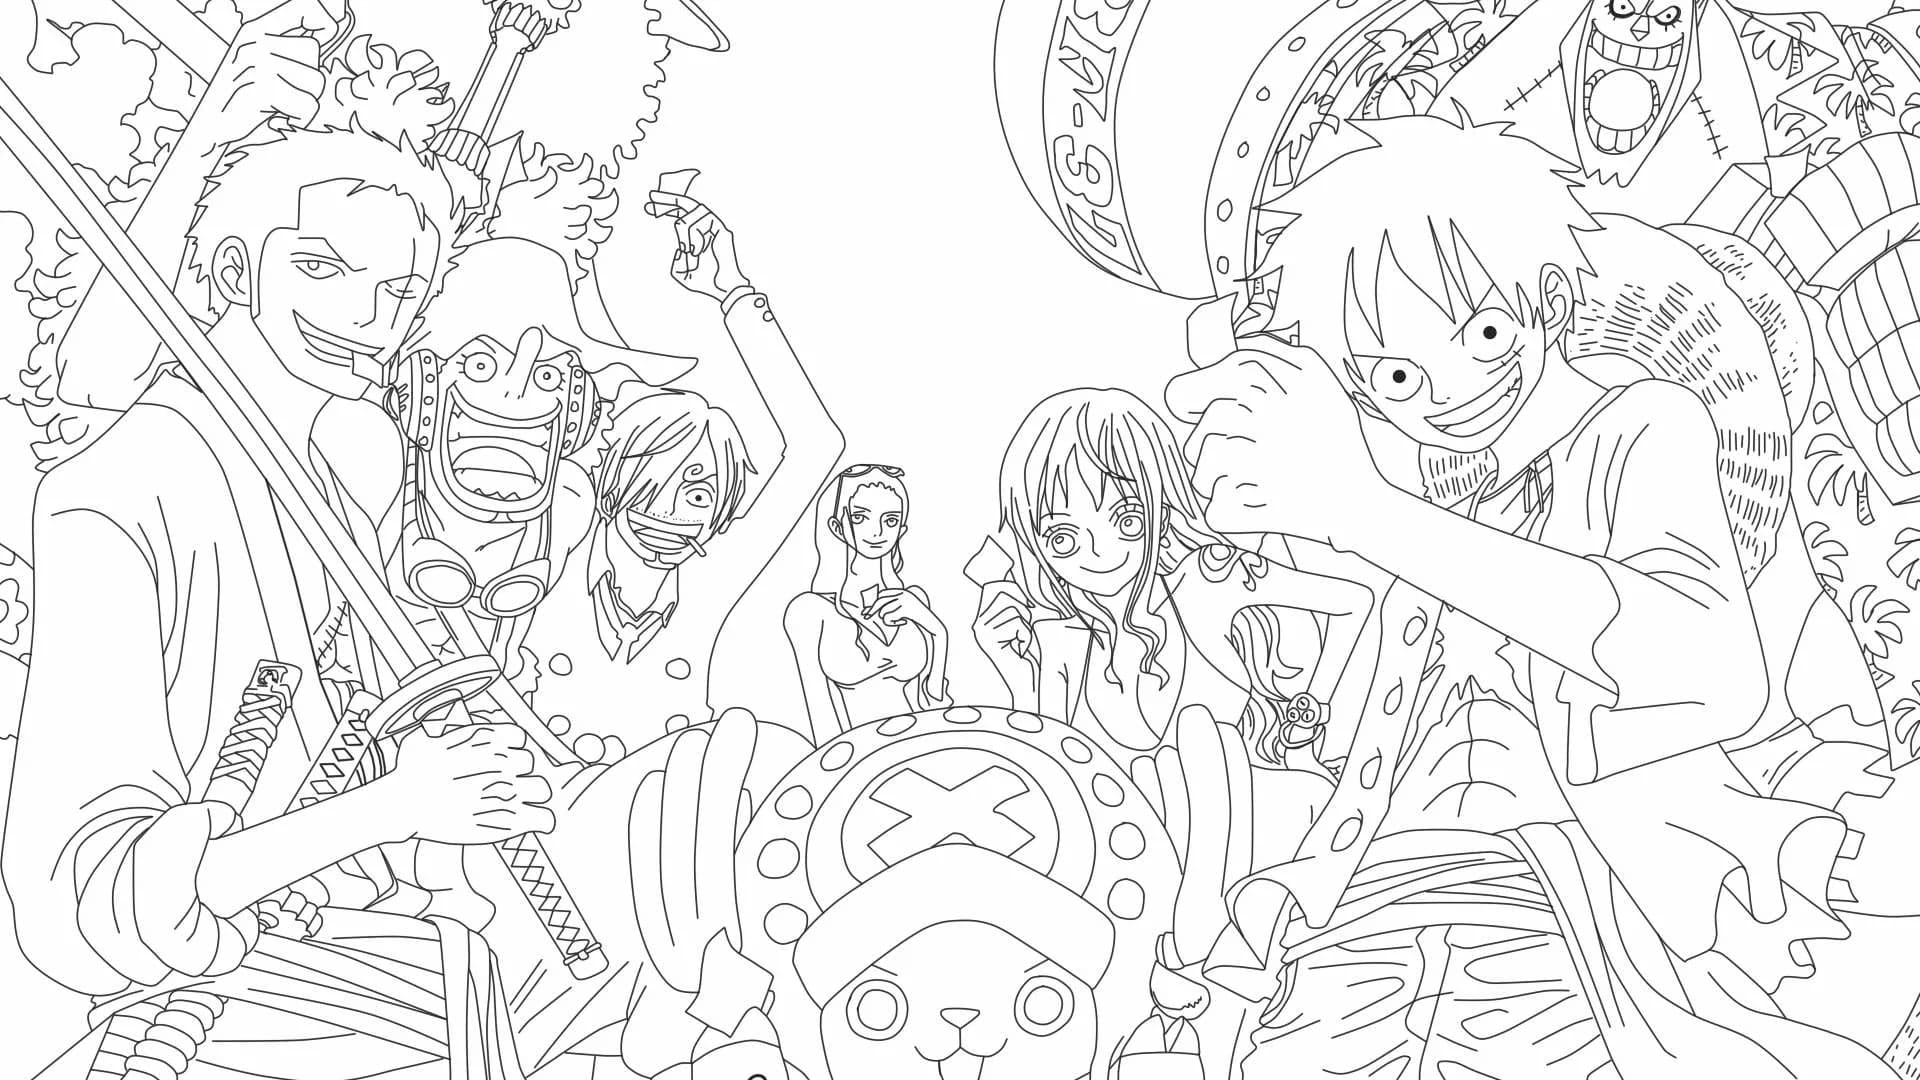 one piece coloring images free printable raskrasil about plants crayola clipart slime coloring pages One Piece Coloring Page